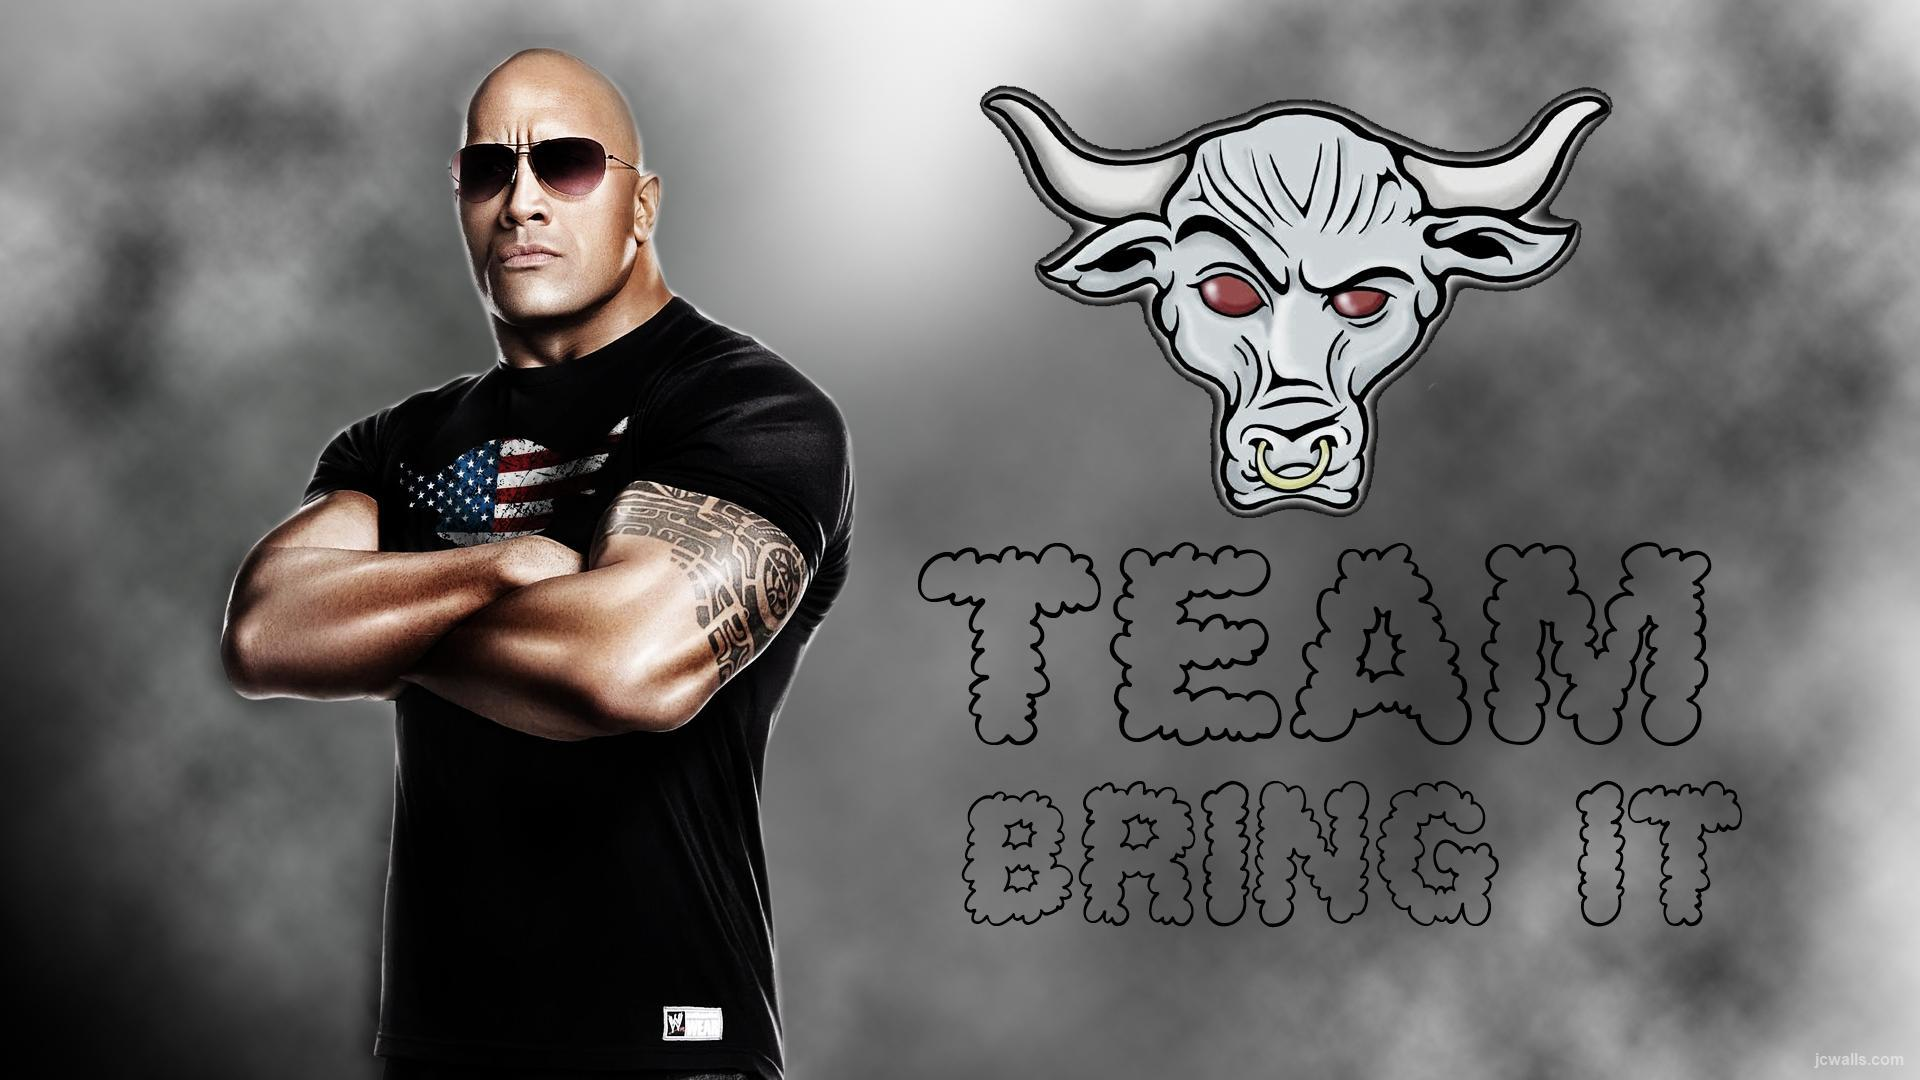 50 Wallpapers Of Dwayne The Rock Johnson